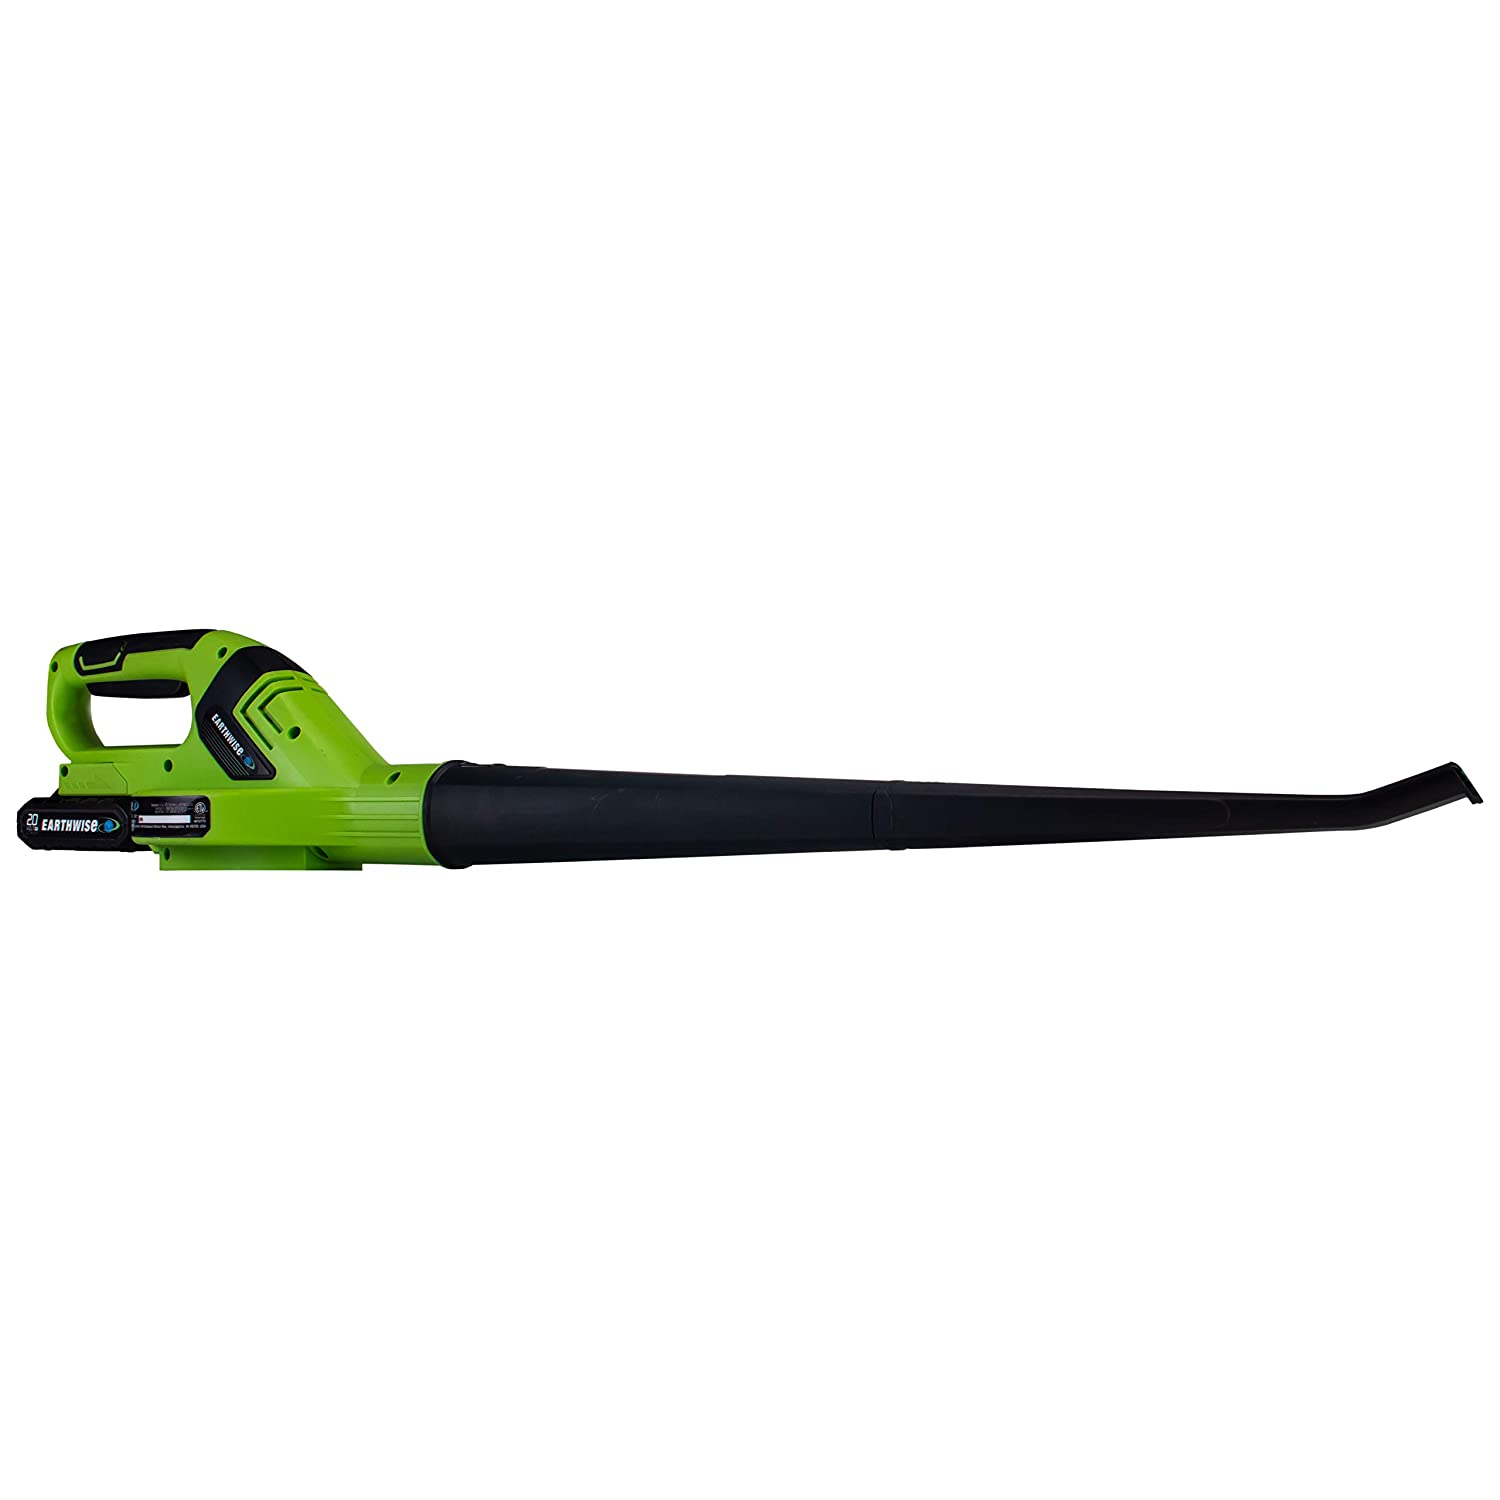 Earthwise LB21020 20-Volt 150MPH Cordless Blower, 2.0AH Battery Fast Charger Included